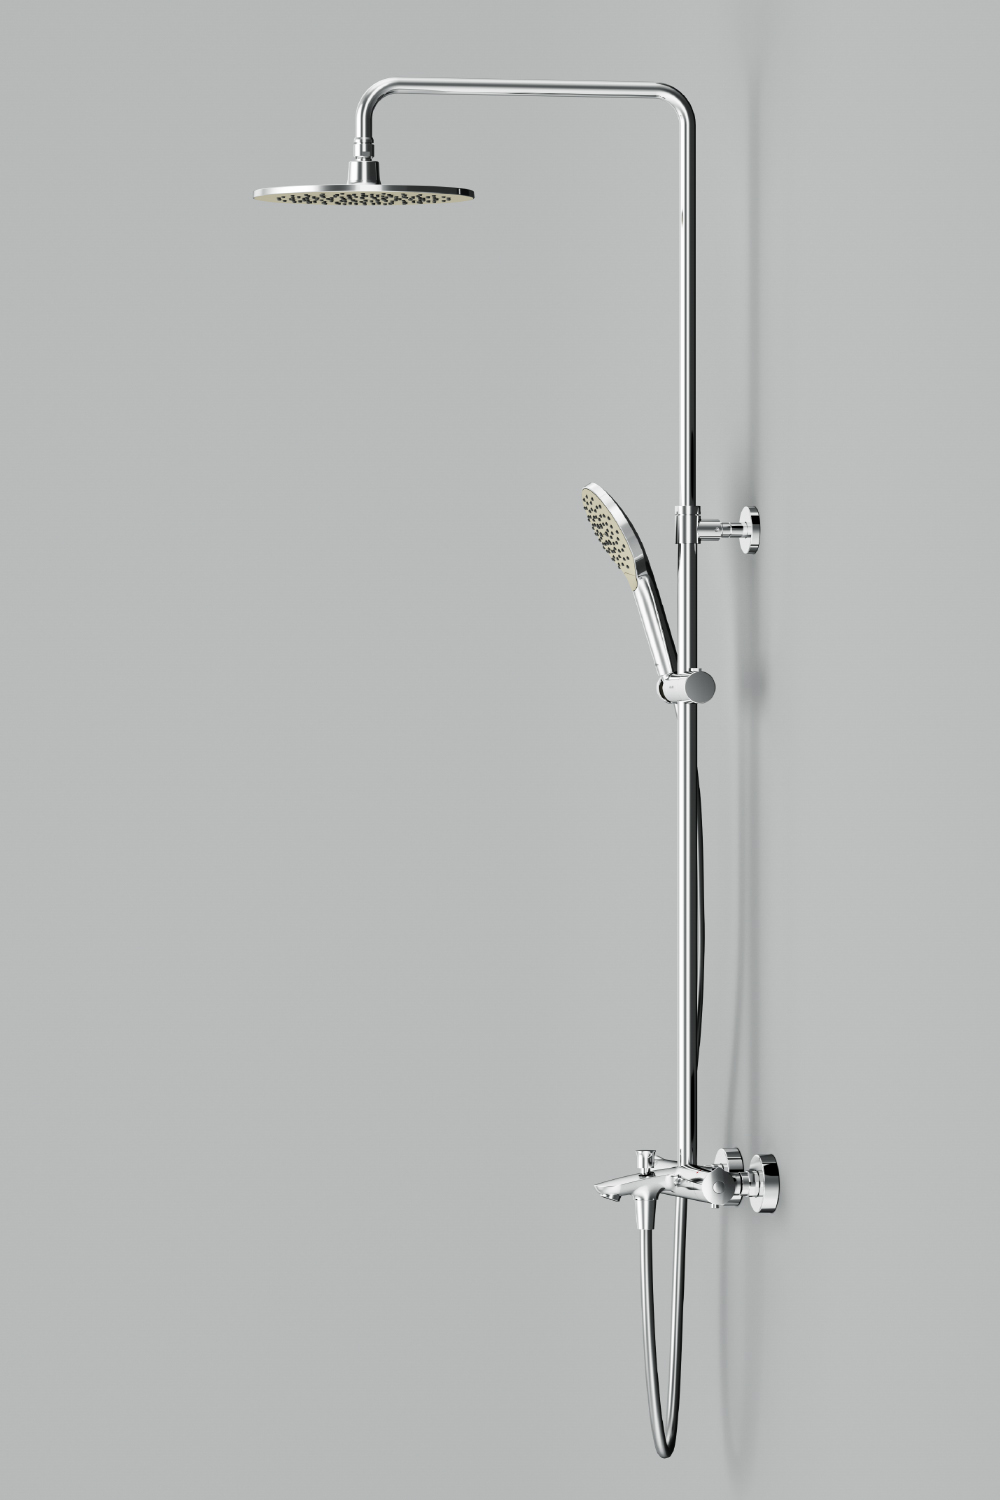 F0780500 ShowerSpot with thermostatic mixer and bath spout